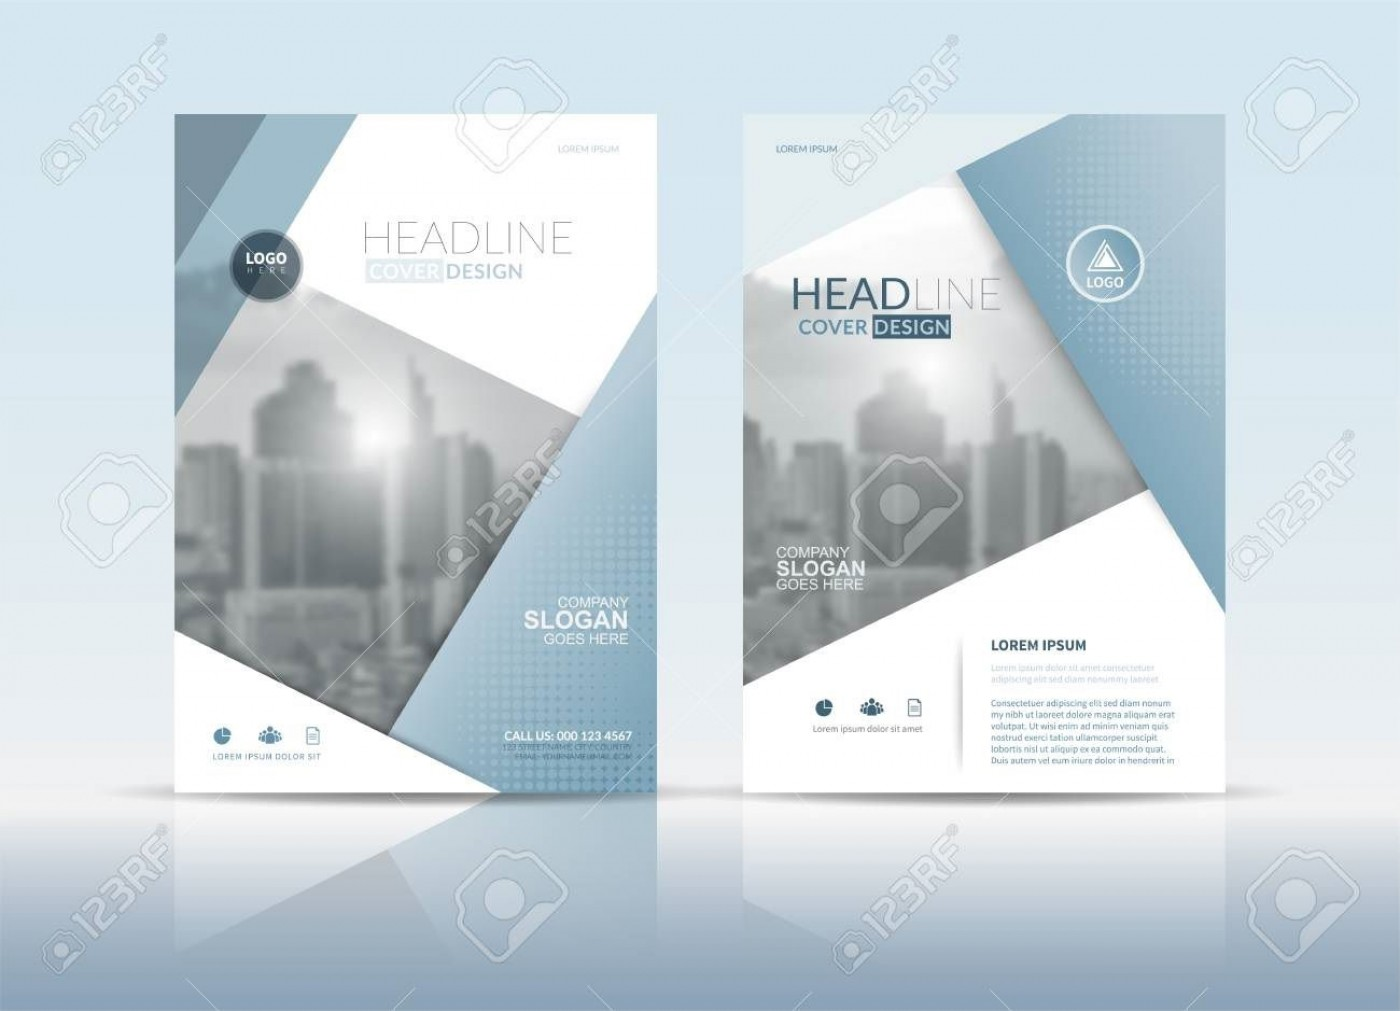 003 Dreaded Free Download Annual Report Cover Design Template Inspiration  Indesign In Word1400